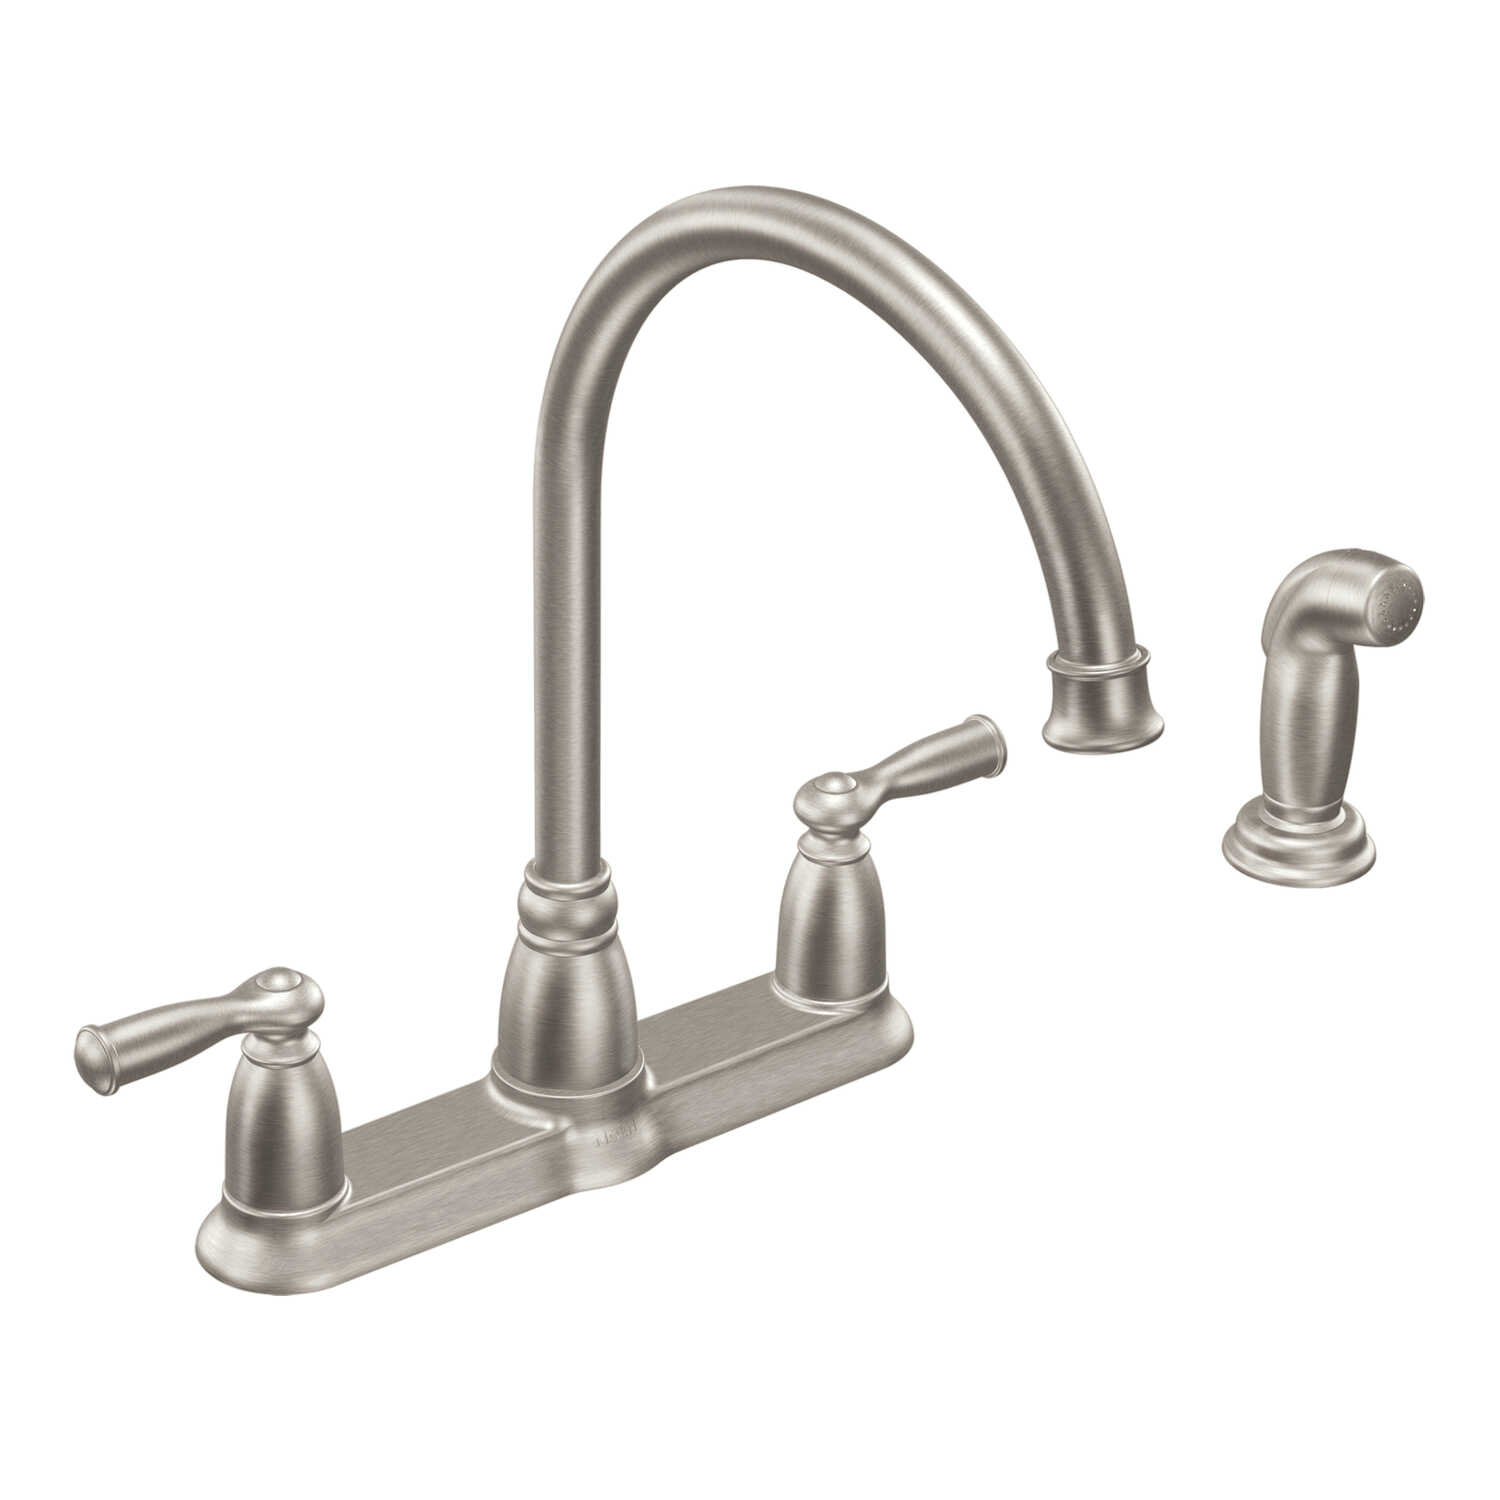 Moen  Banbury  Two Handle  Stainless Steel  Kitchen Faucet  Side Sprayer Included